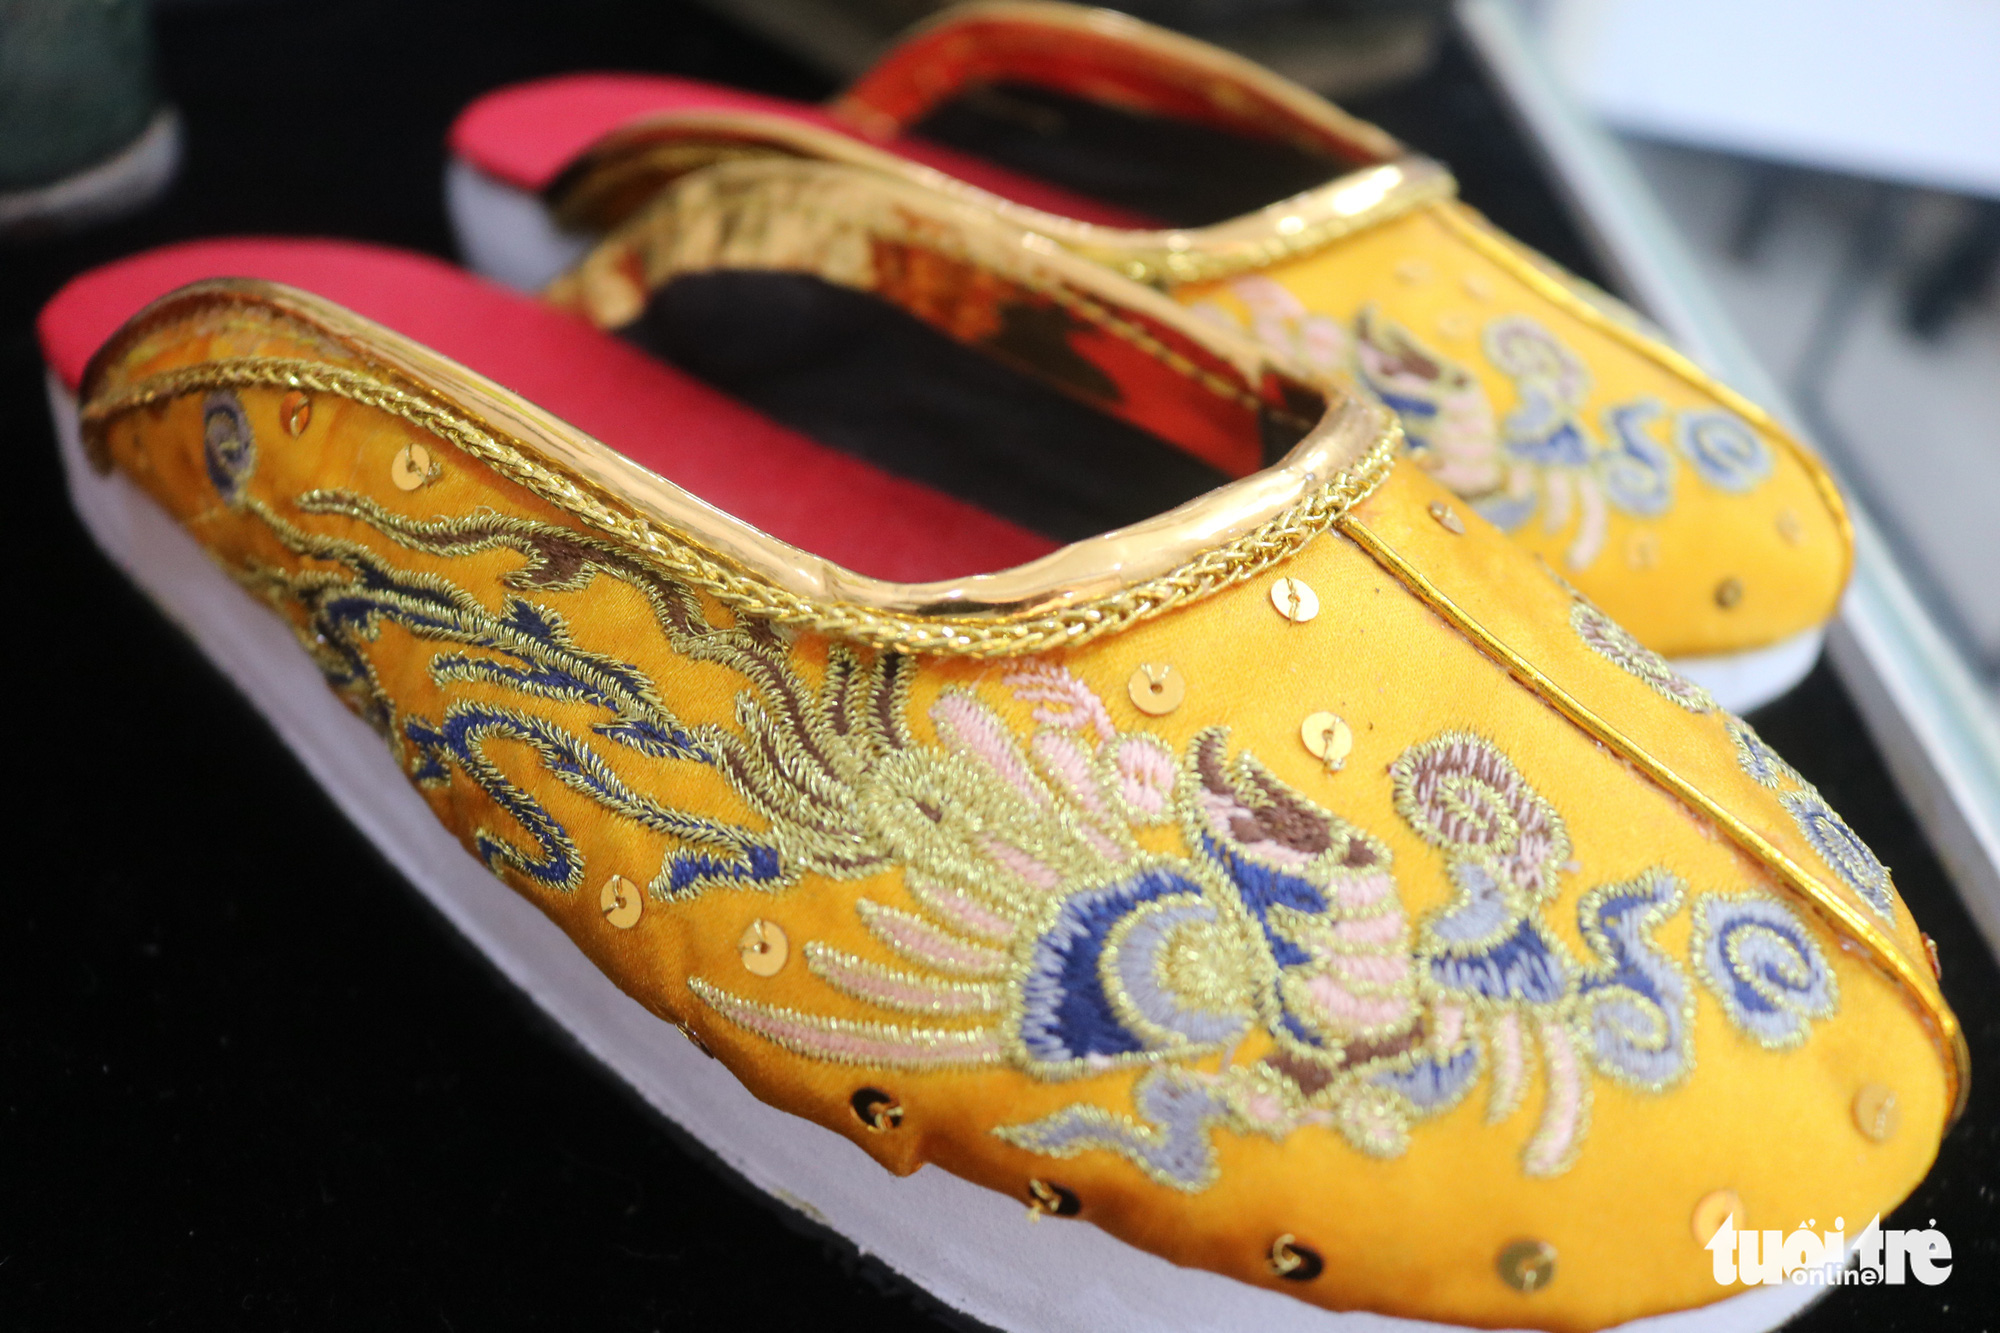 A pair of shoes for the King under the Nguyen Dynasty made by Tran Quang Minh Tan